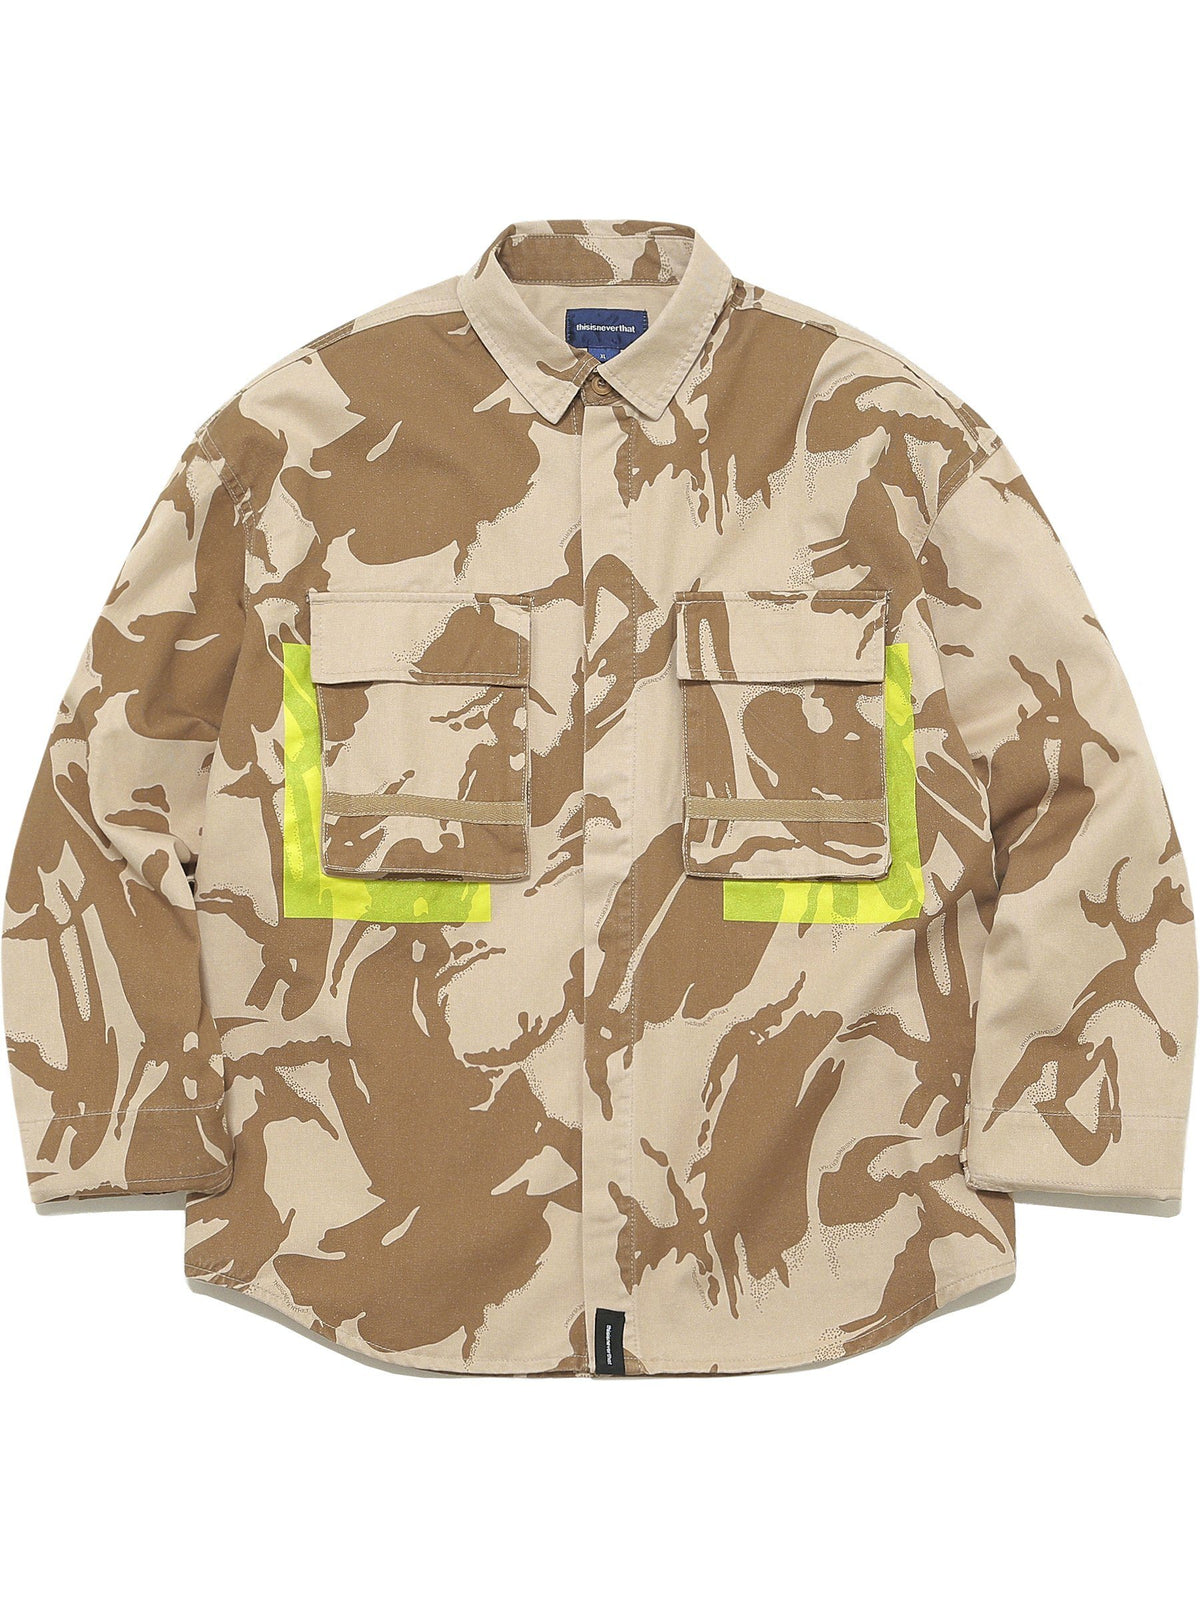 Jungle Shirt Jacket - thisisneverthat